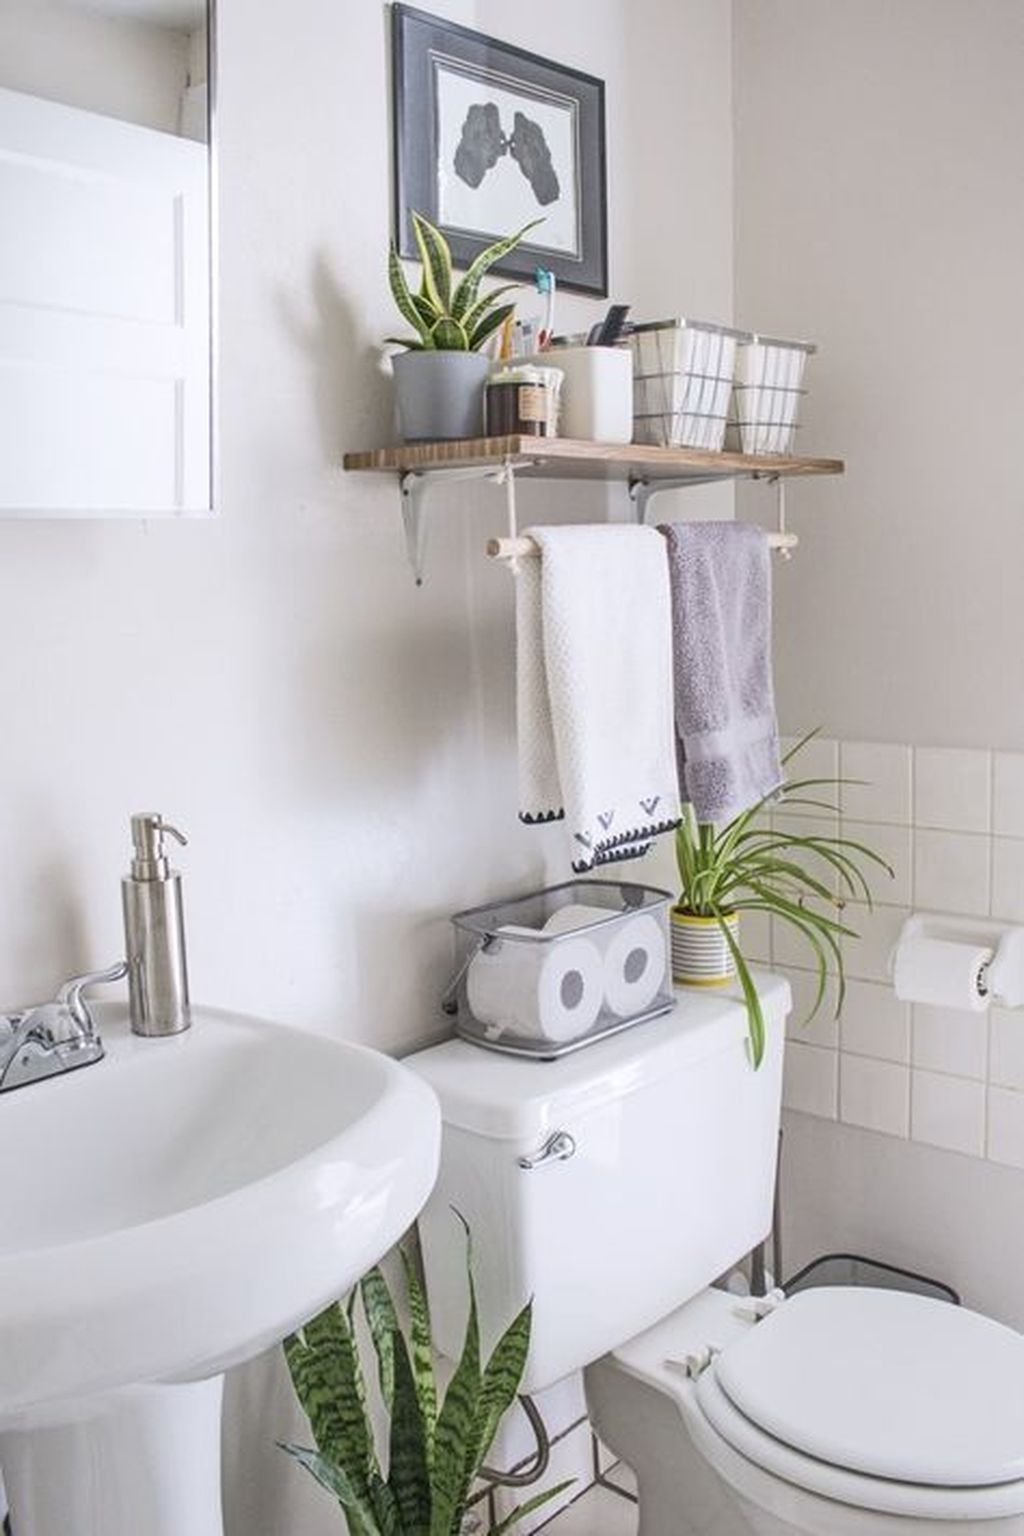 20+ Cool Storage Solutions For Small Apartment | Rental ... on Small Apartment Bathroom Storage Ideas  id=17723